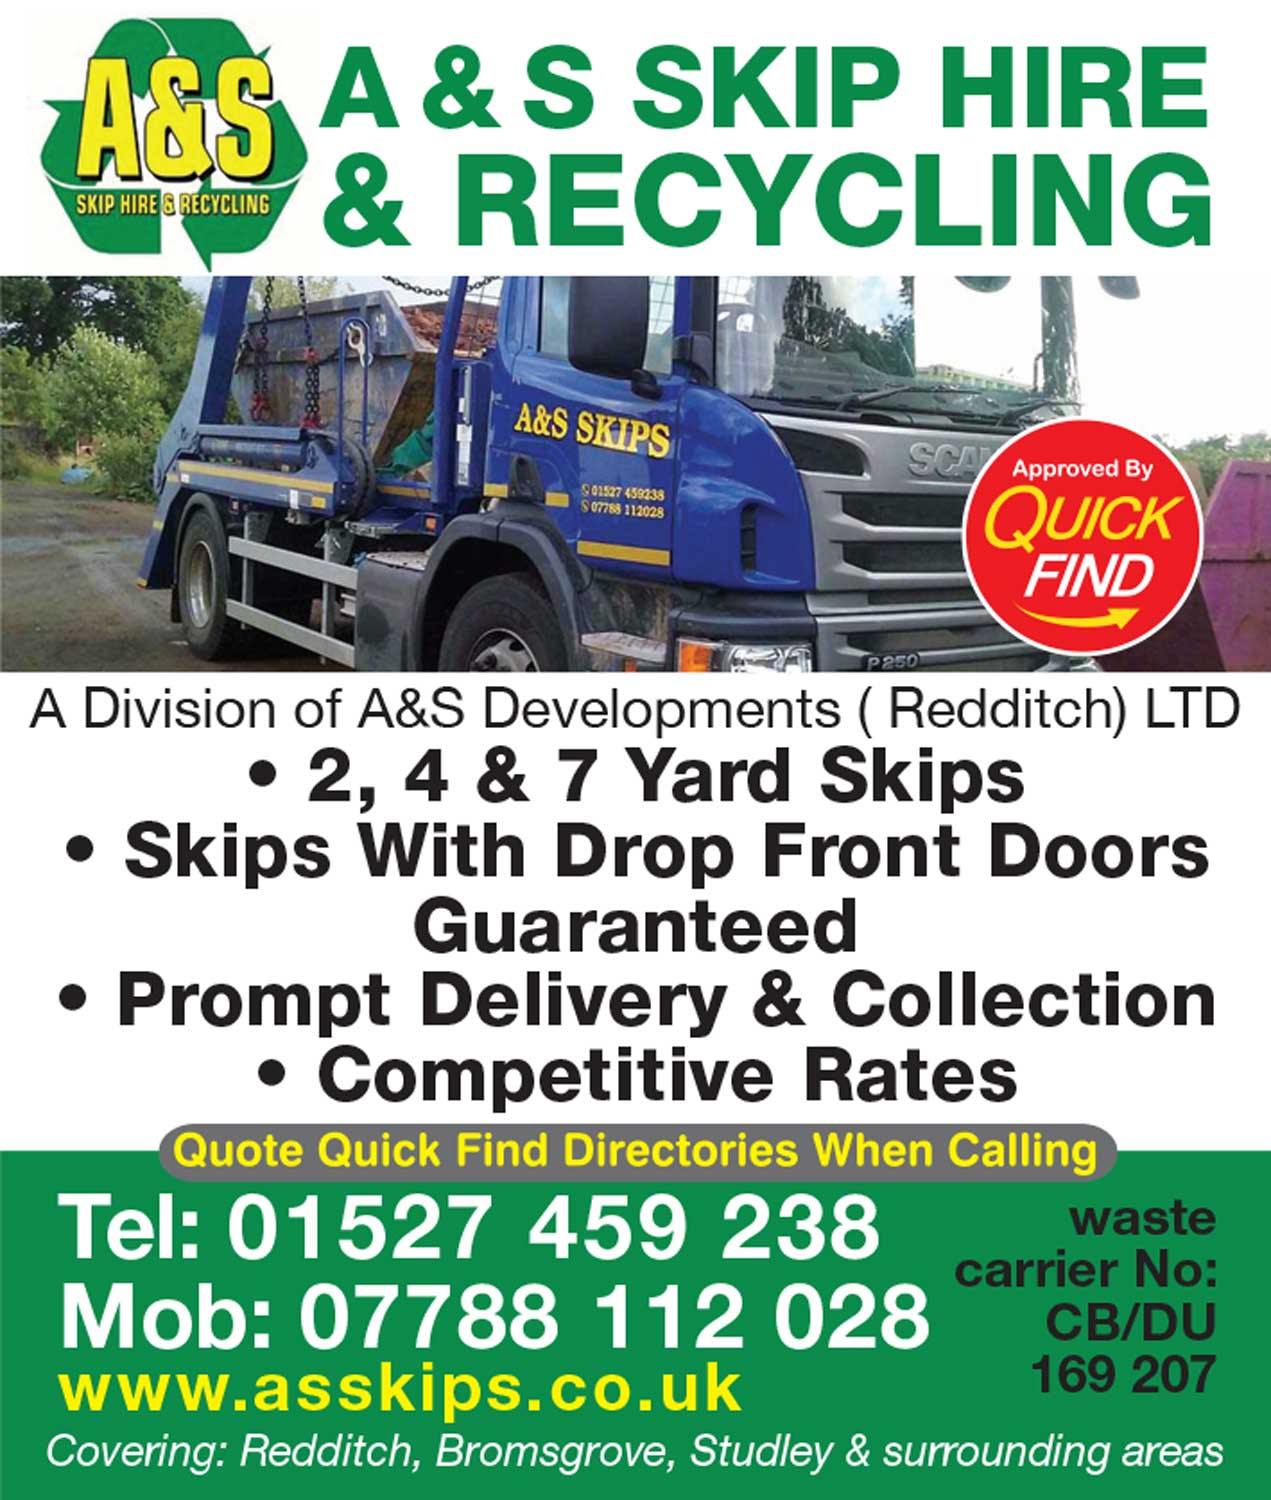 A&S Skip Hire & Recycling